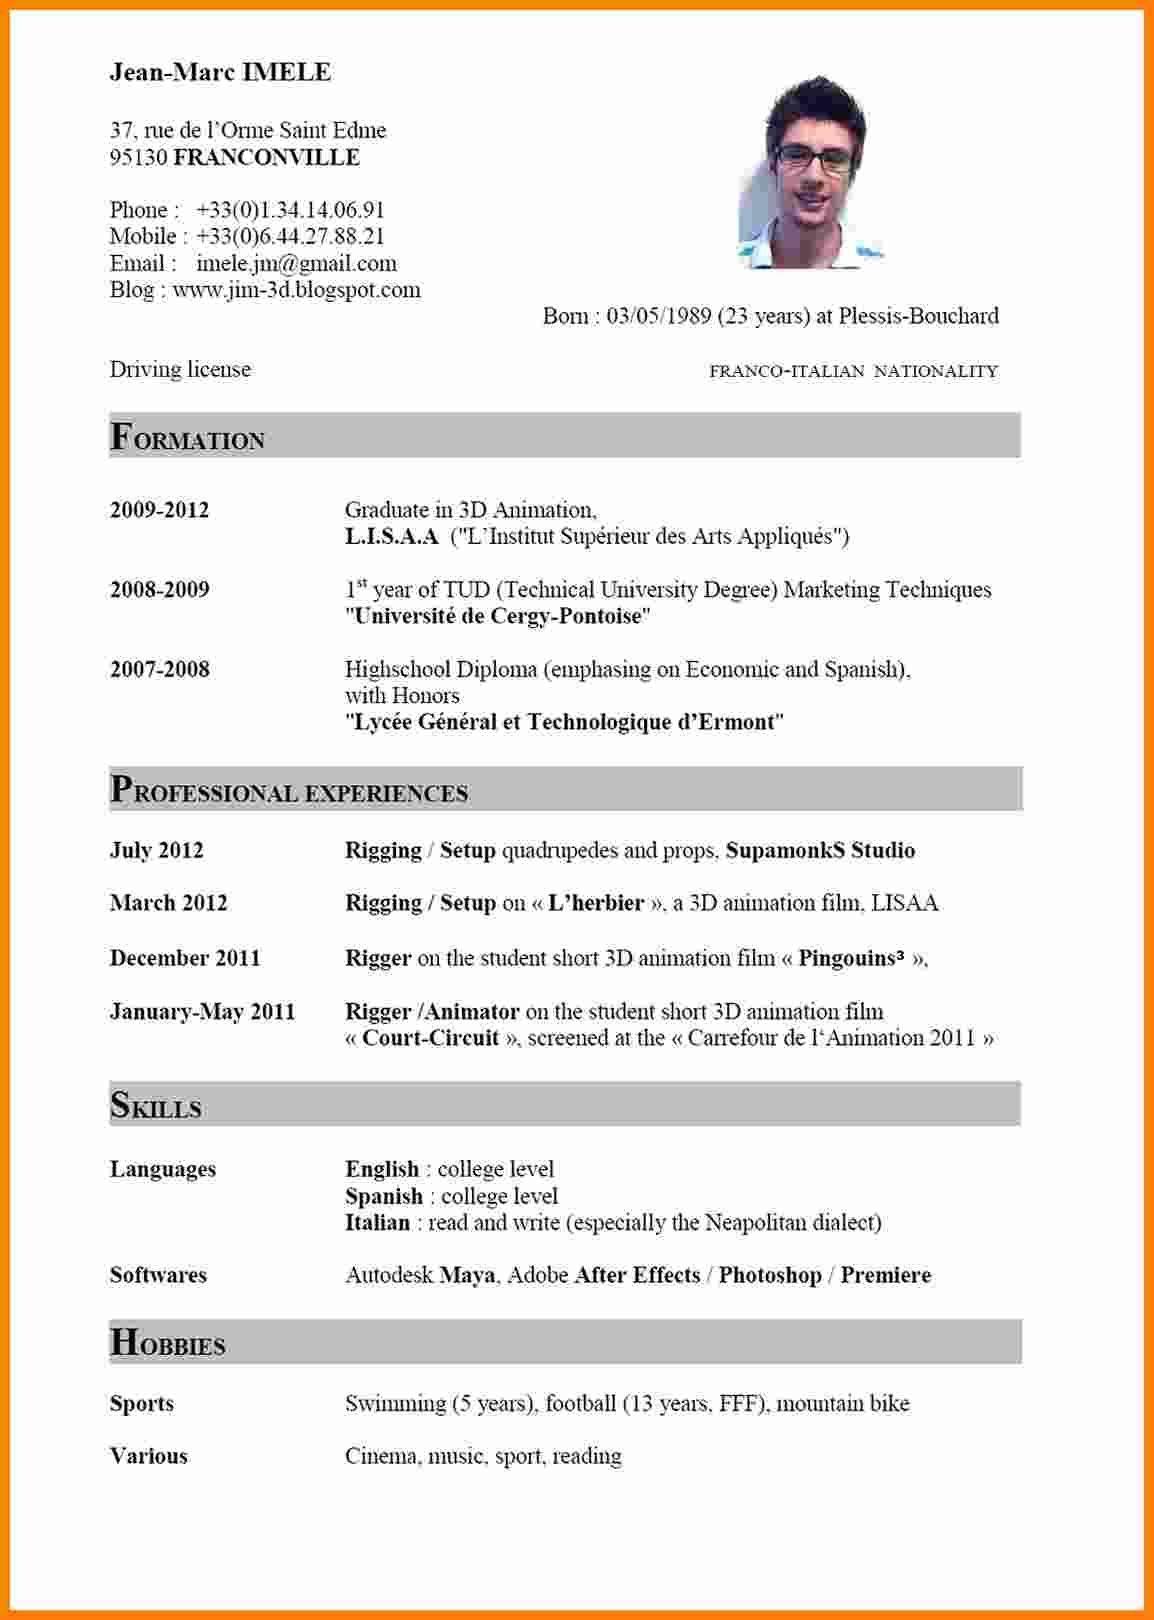 Resume Examples by Industry and Job Title (With images